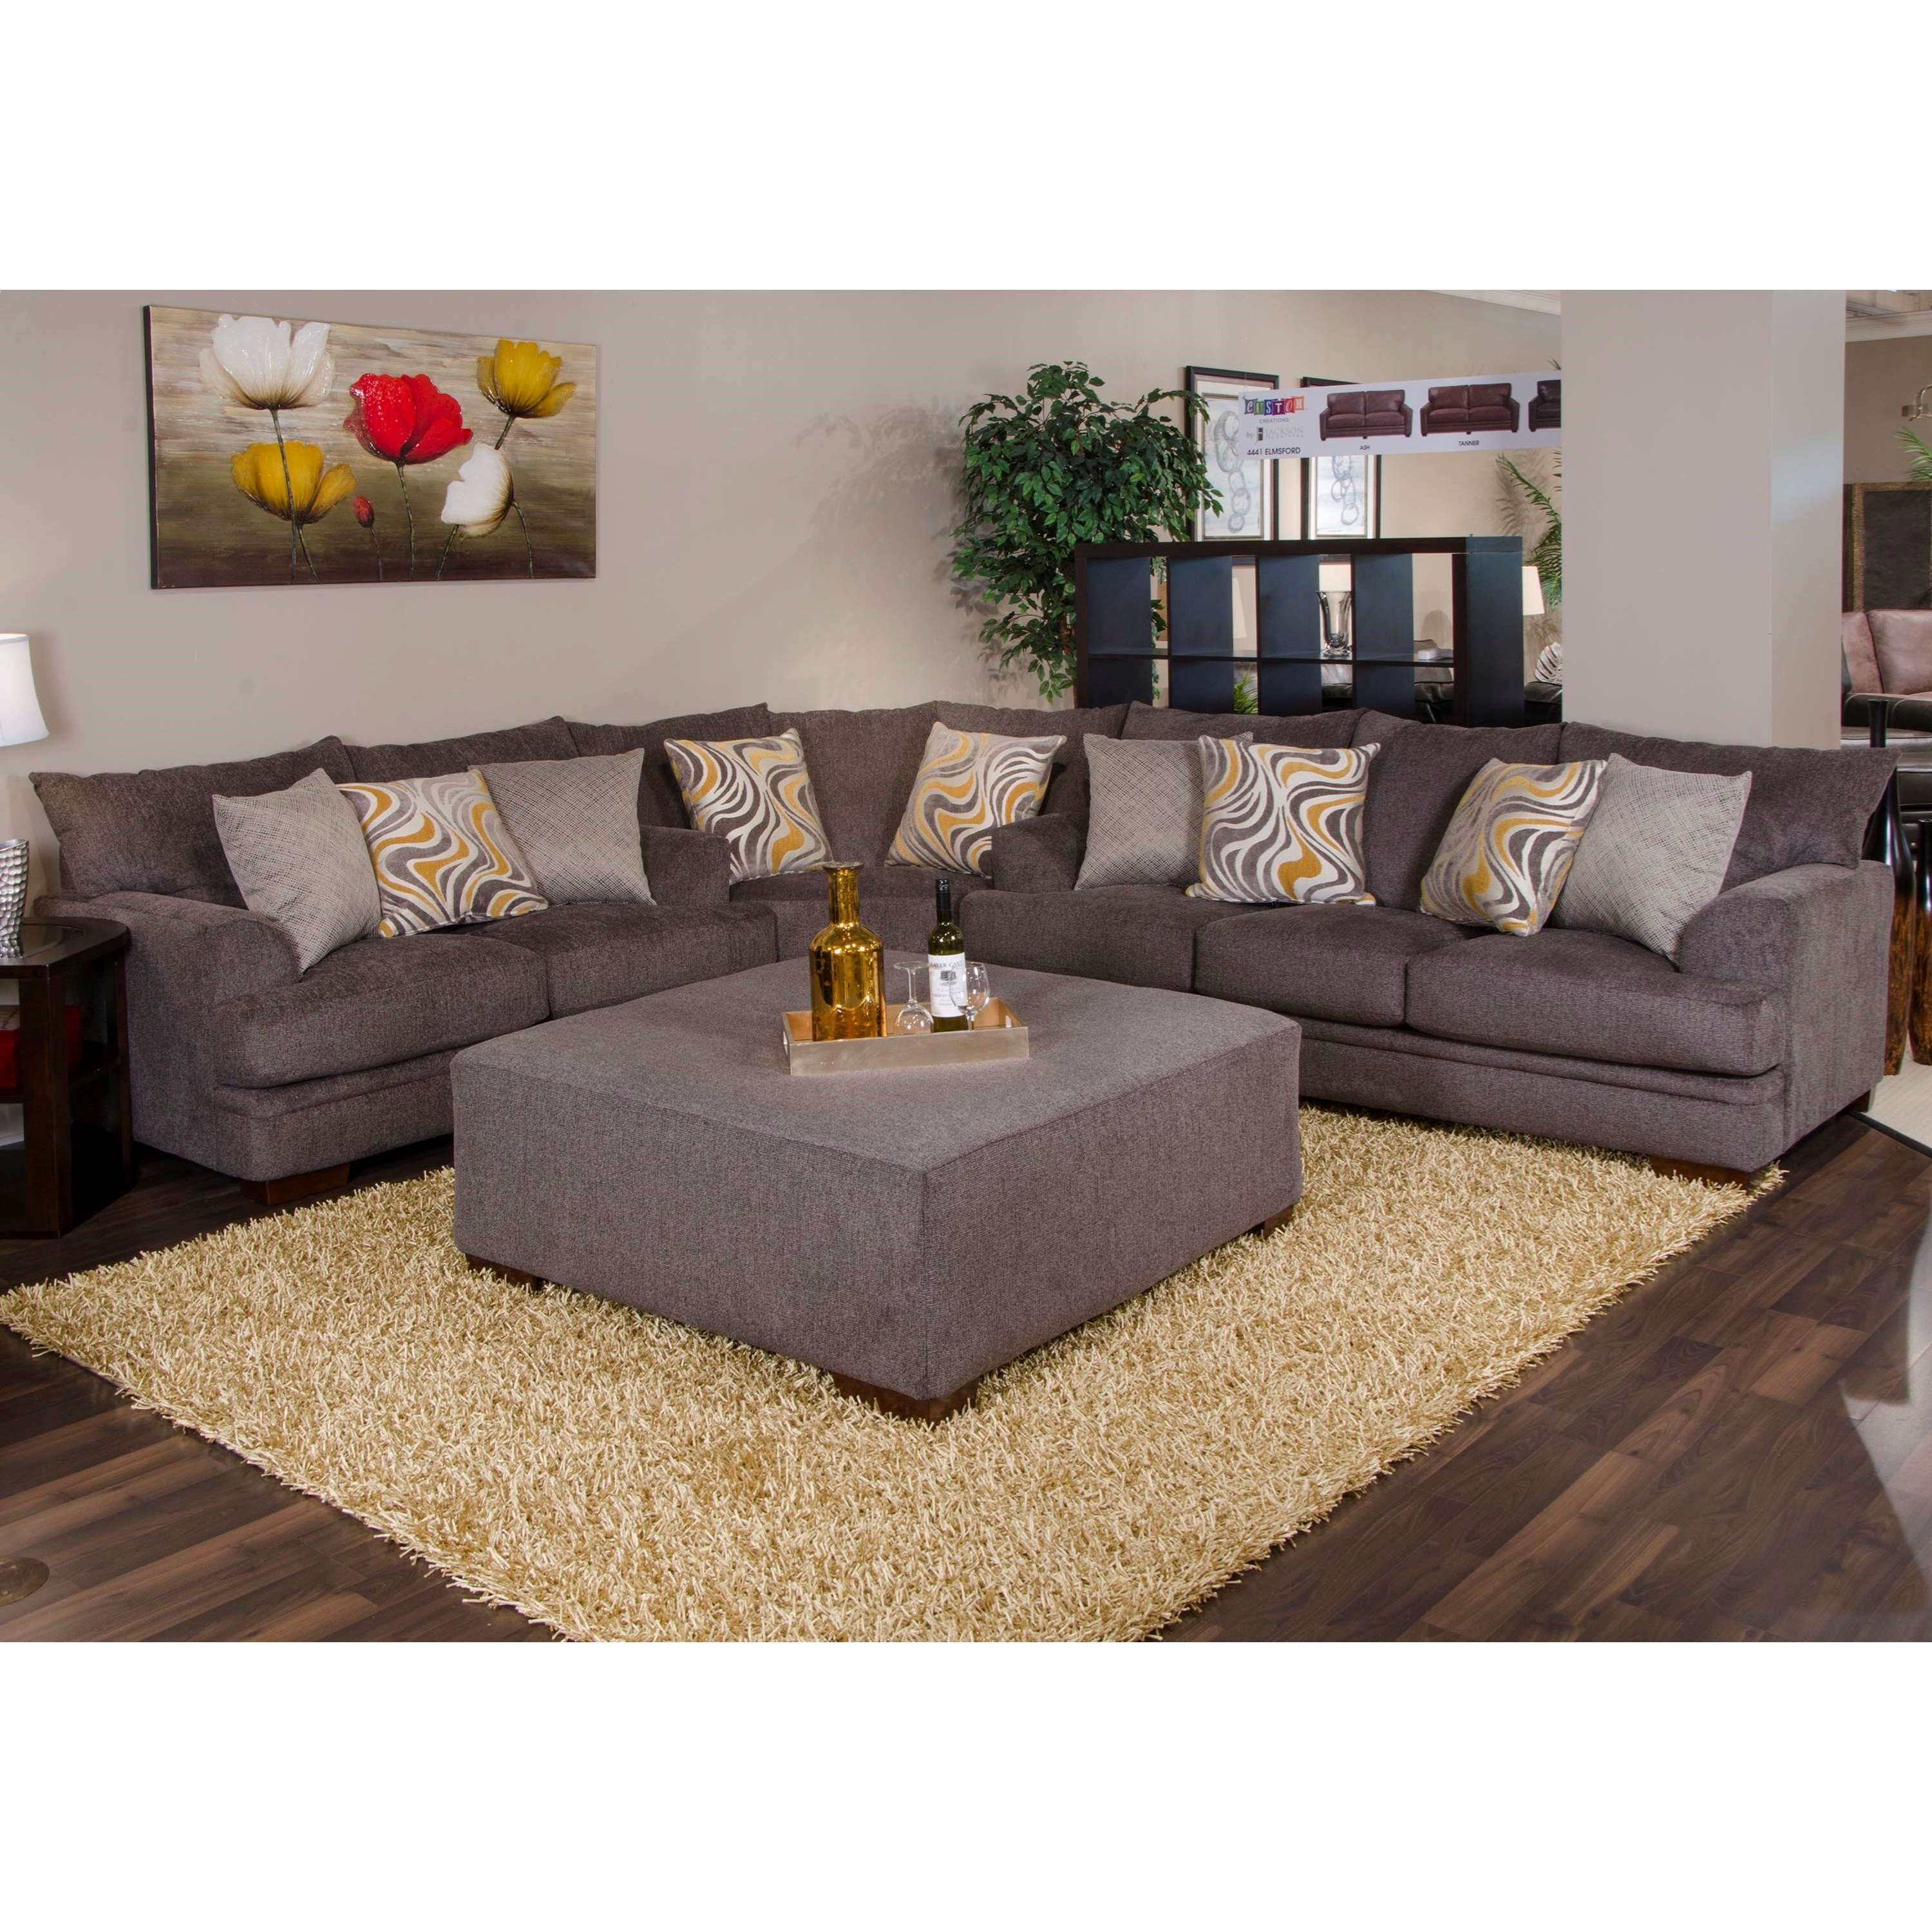 Jackson Sectional Sofa Barkley 3 Piece Sectional In Grey Fabric By Jackson Furniture Thesofa